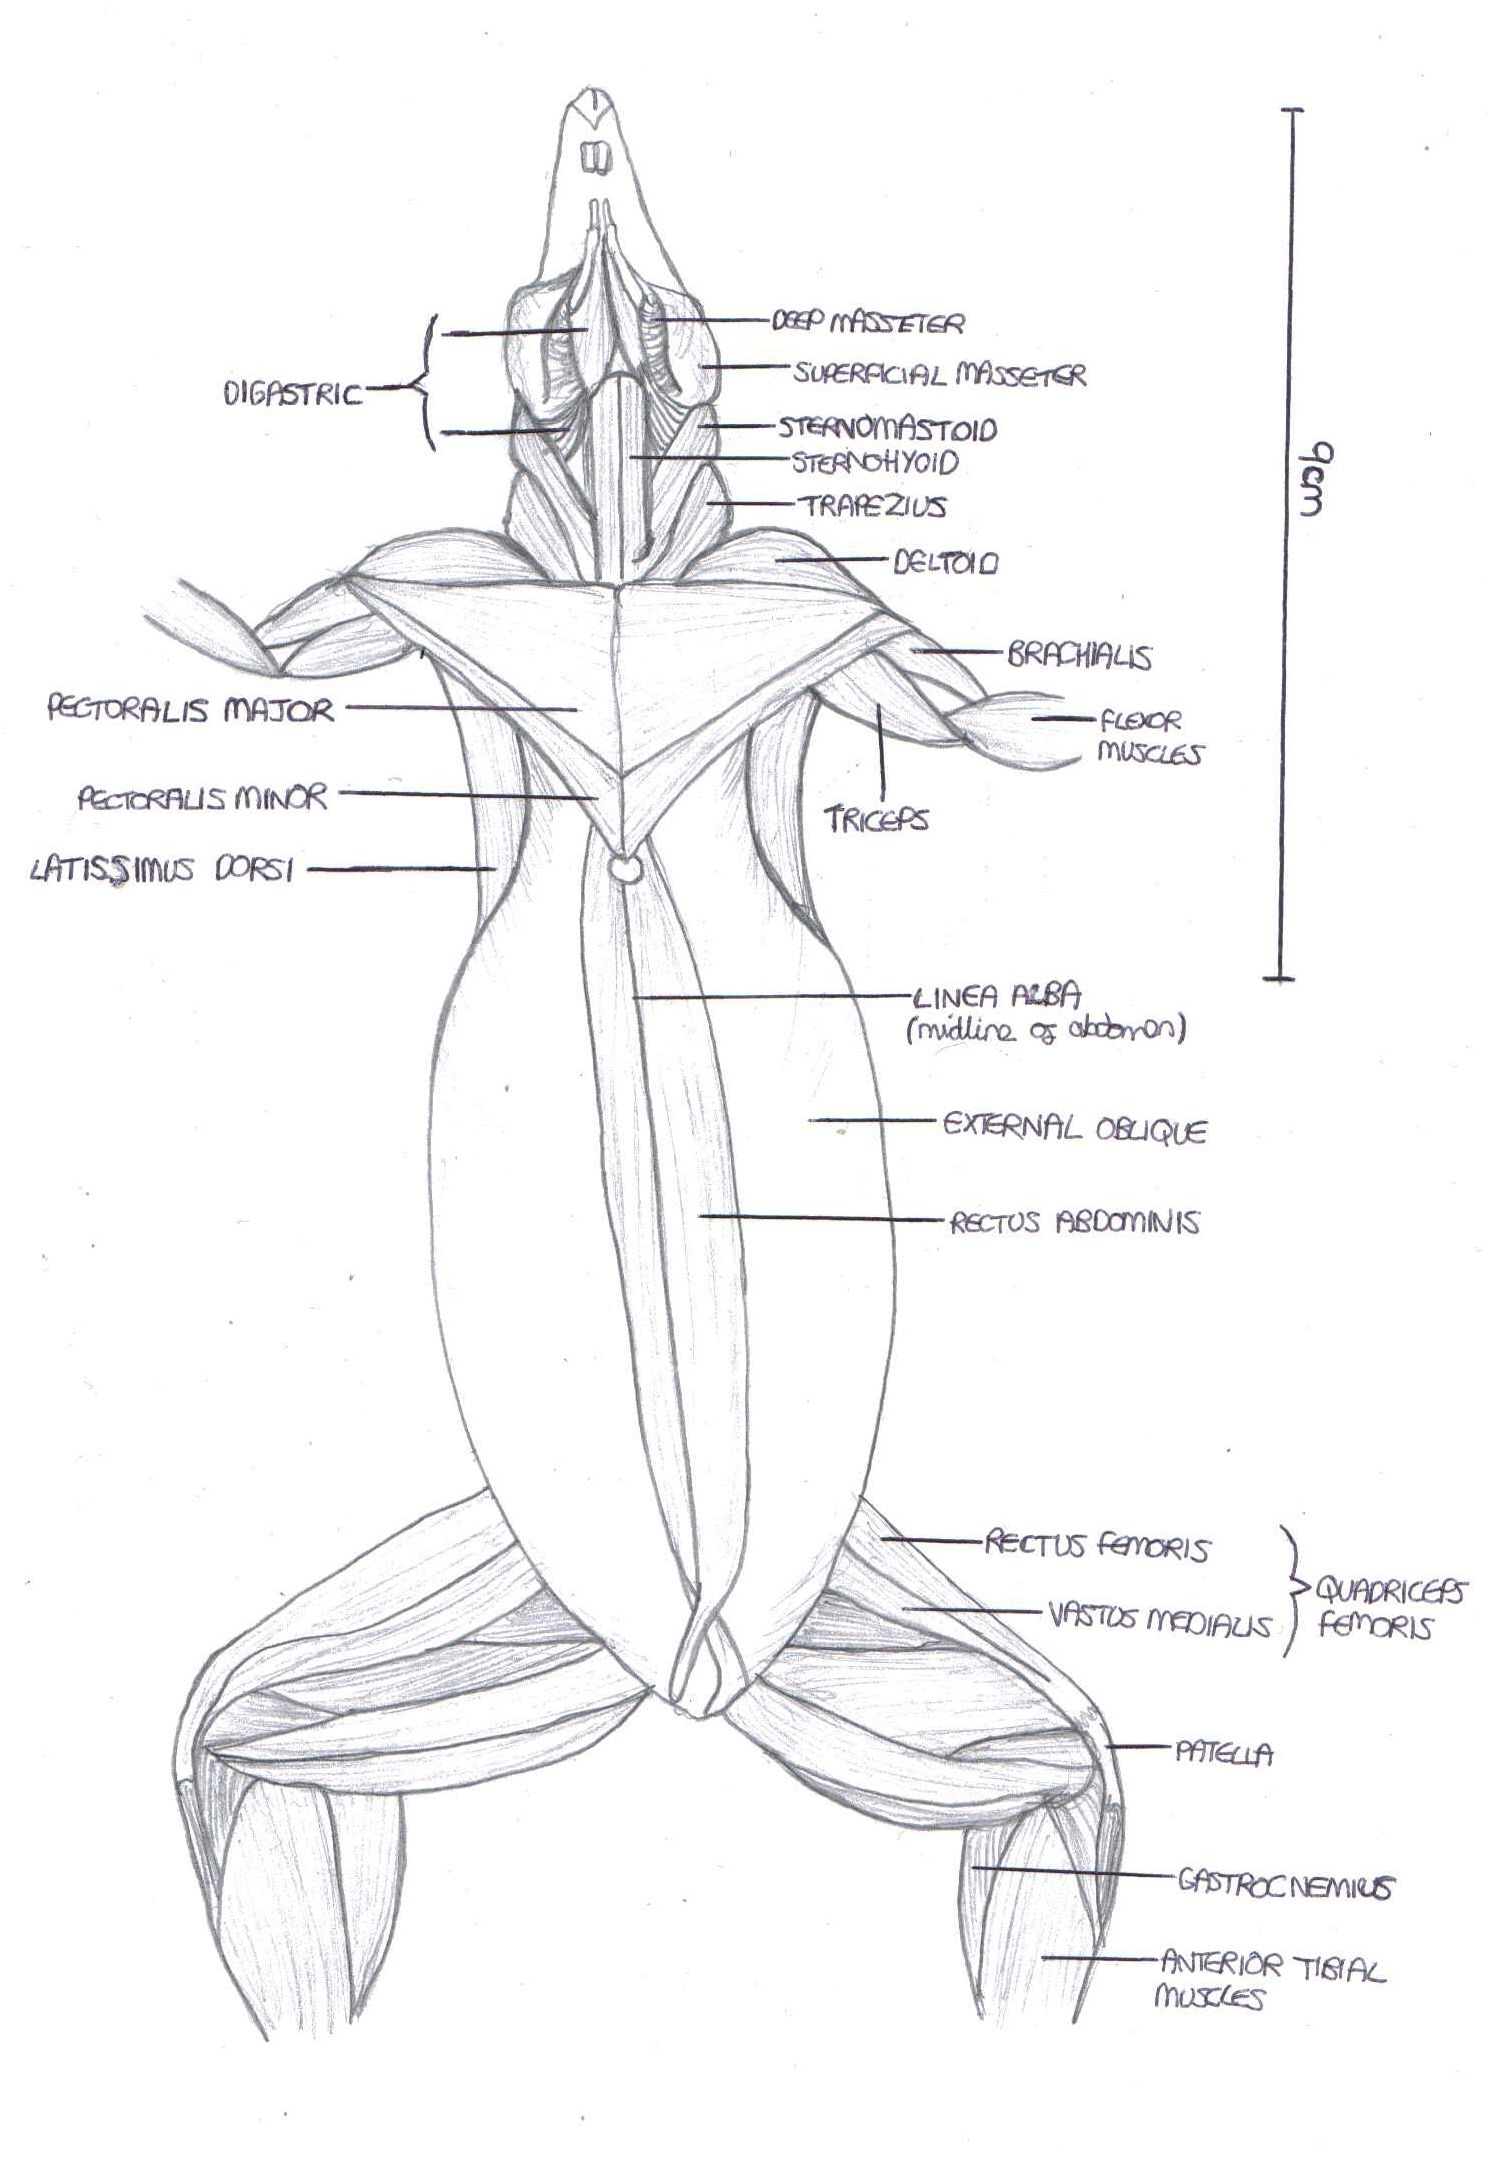 Mouse Dissection Diagram Audiovox Vehicle Wiring Diagrams Anatomy Of Rat Musculature Ventral View Zoology